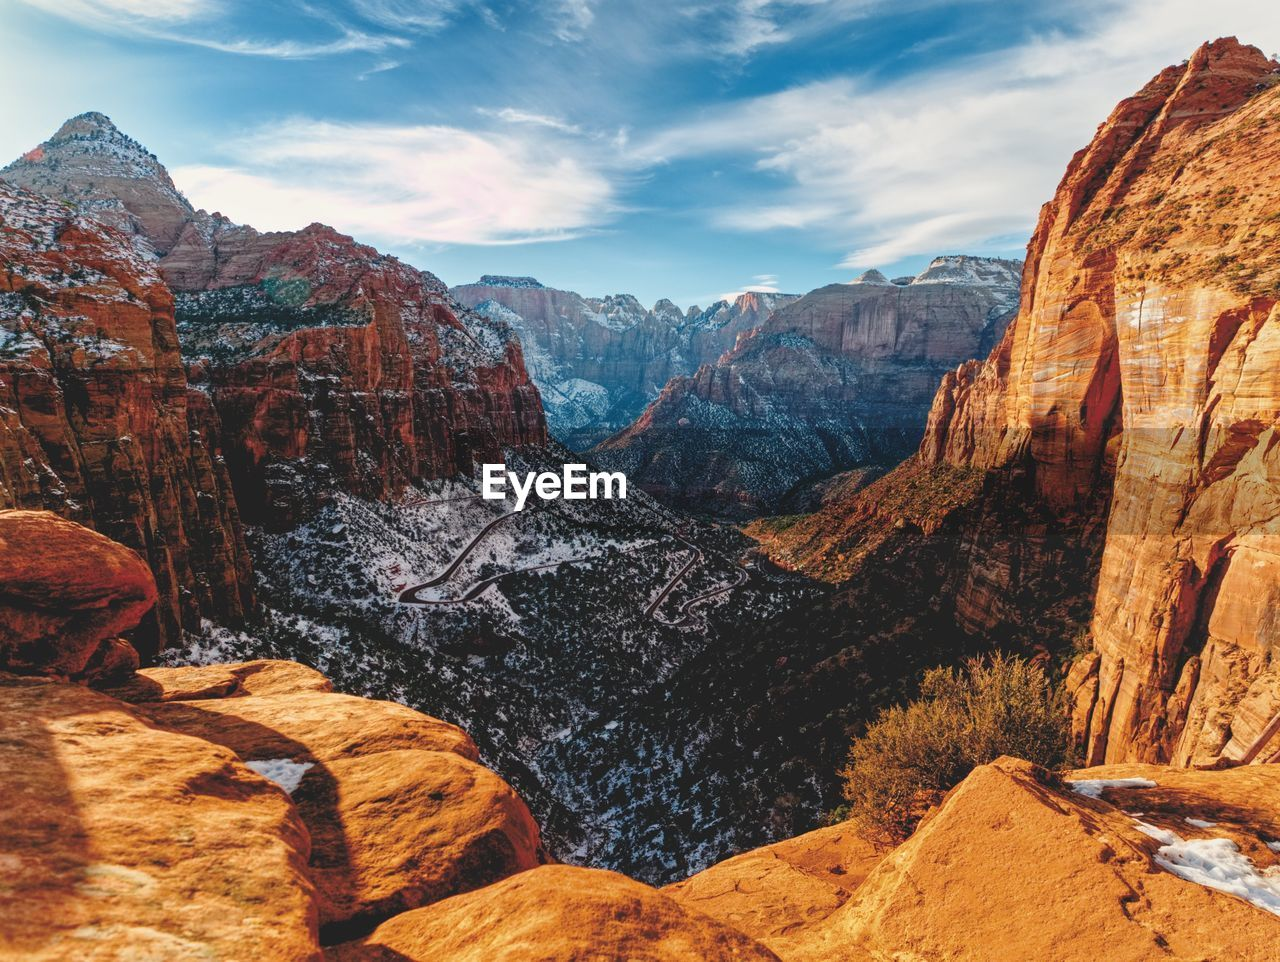 mountain, scenics - nature, rock, beauty in nature, sky, mountain range, rock - object, non-urban scene, tranquil scene, rock formation, solid, cloud - sky, nature, tranquility, idyllic, geology, environment, landscape, physical geography, remote, no people, formation, eroded, mountain peak, arid climate